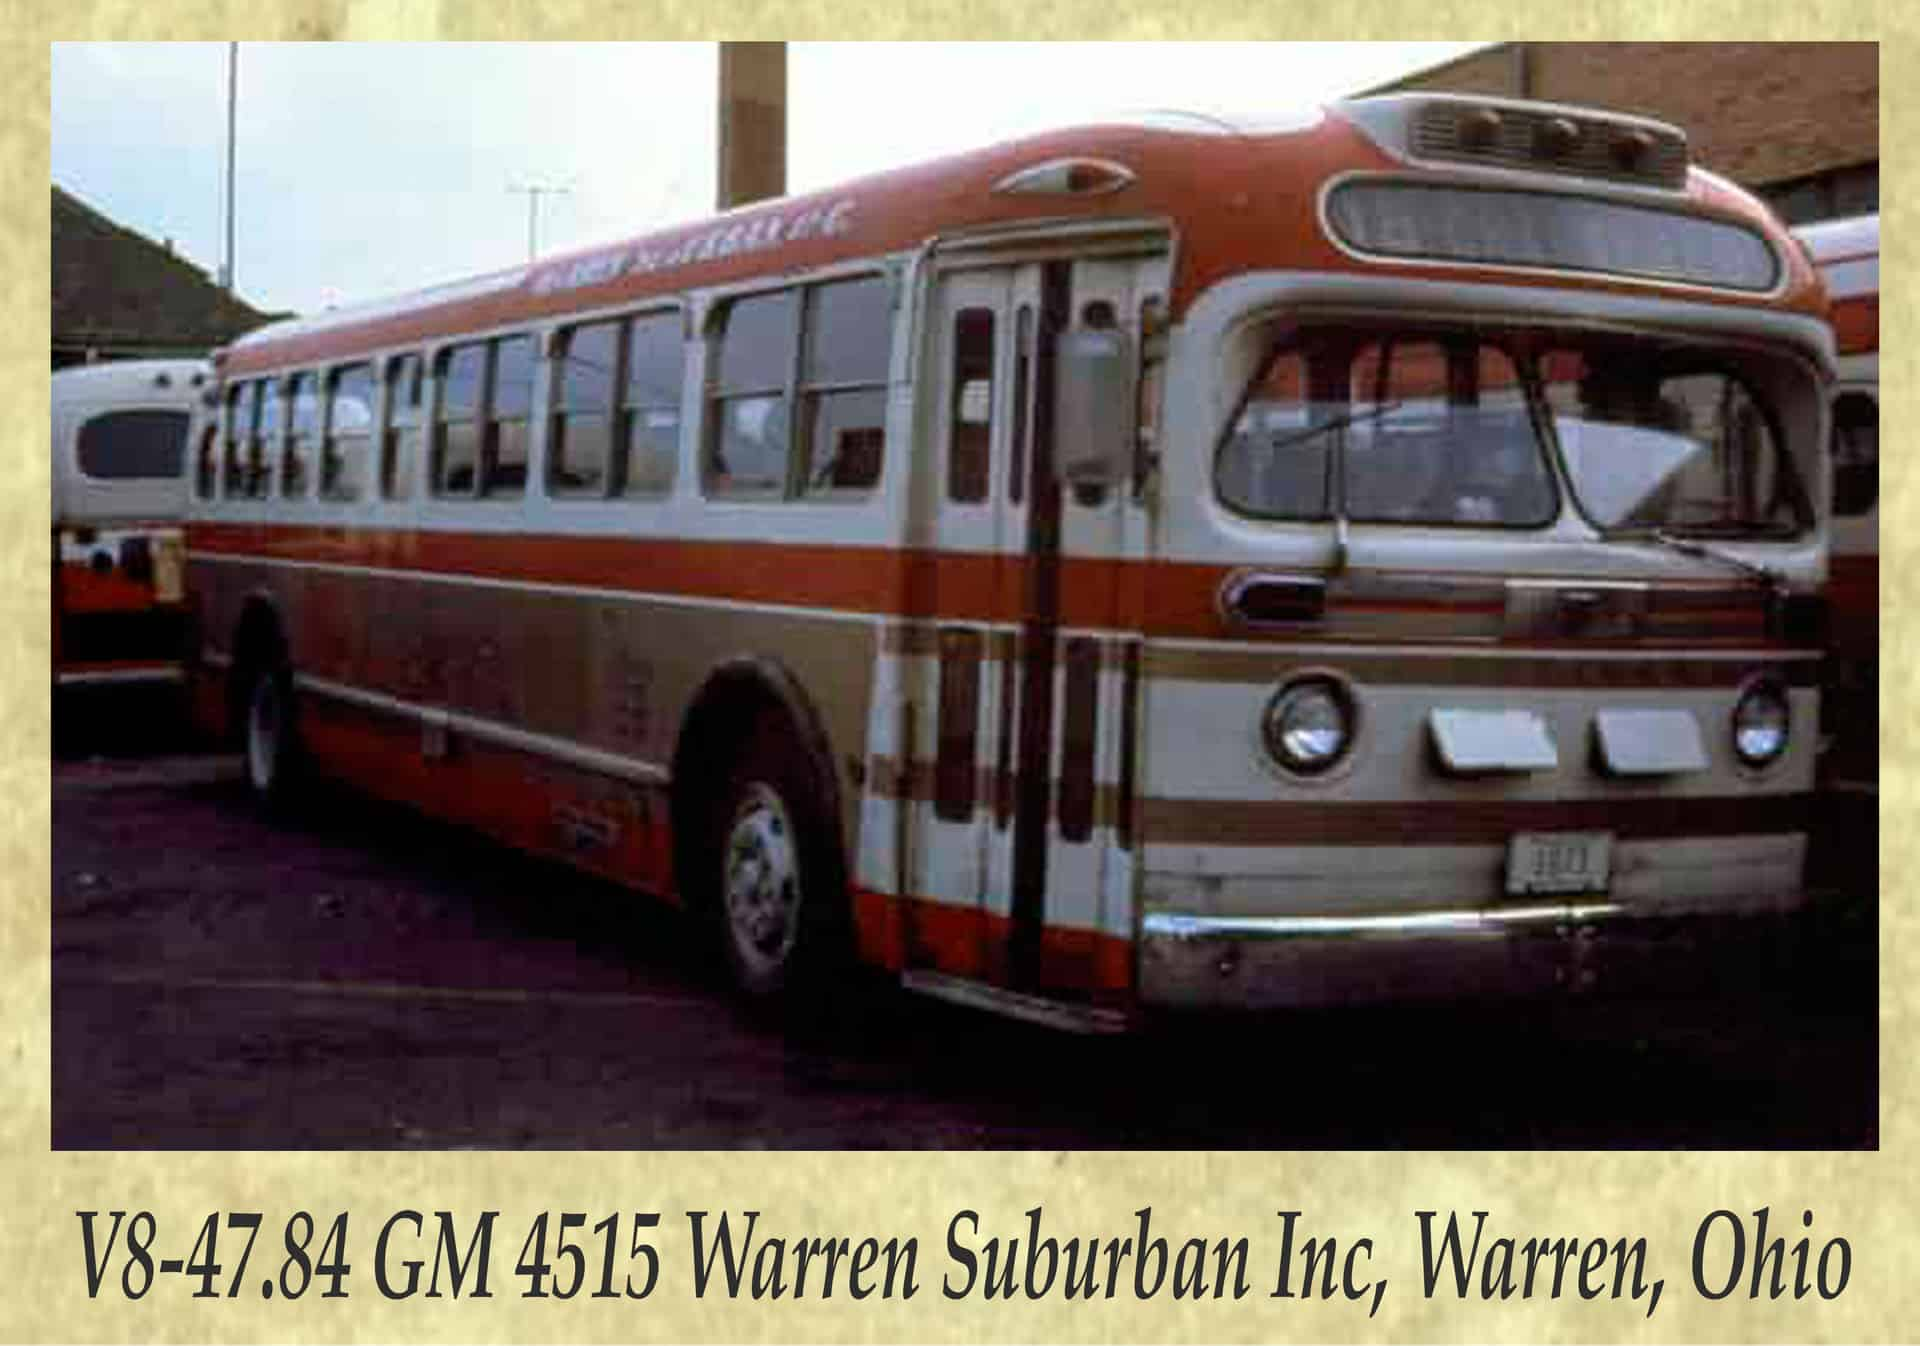 V8-47.84 GM 4515 Warren Suburban Inc, Warren, Ohio